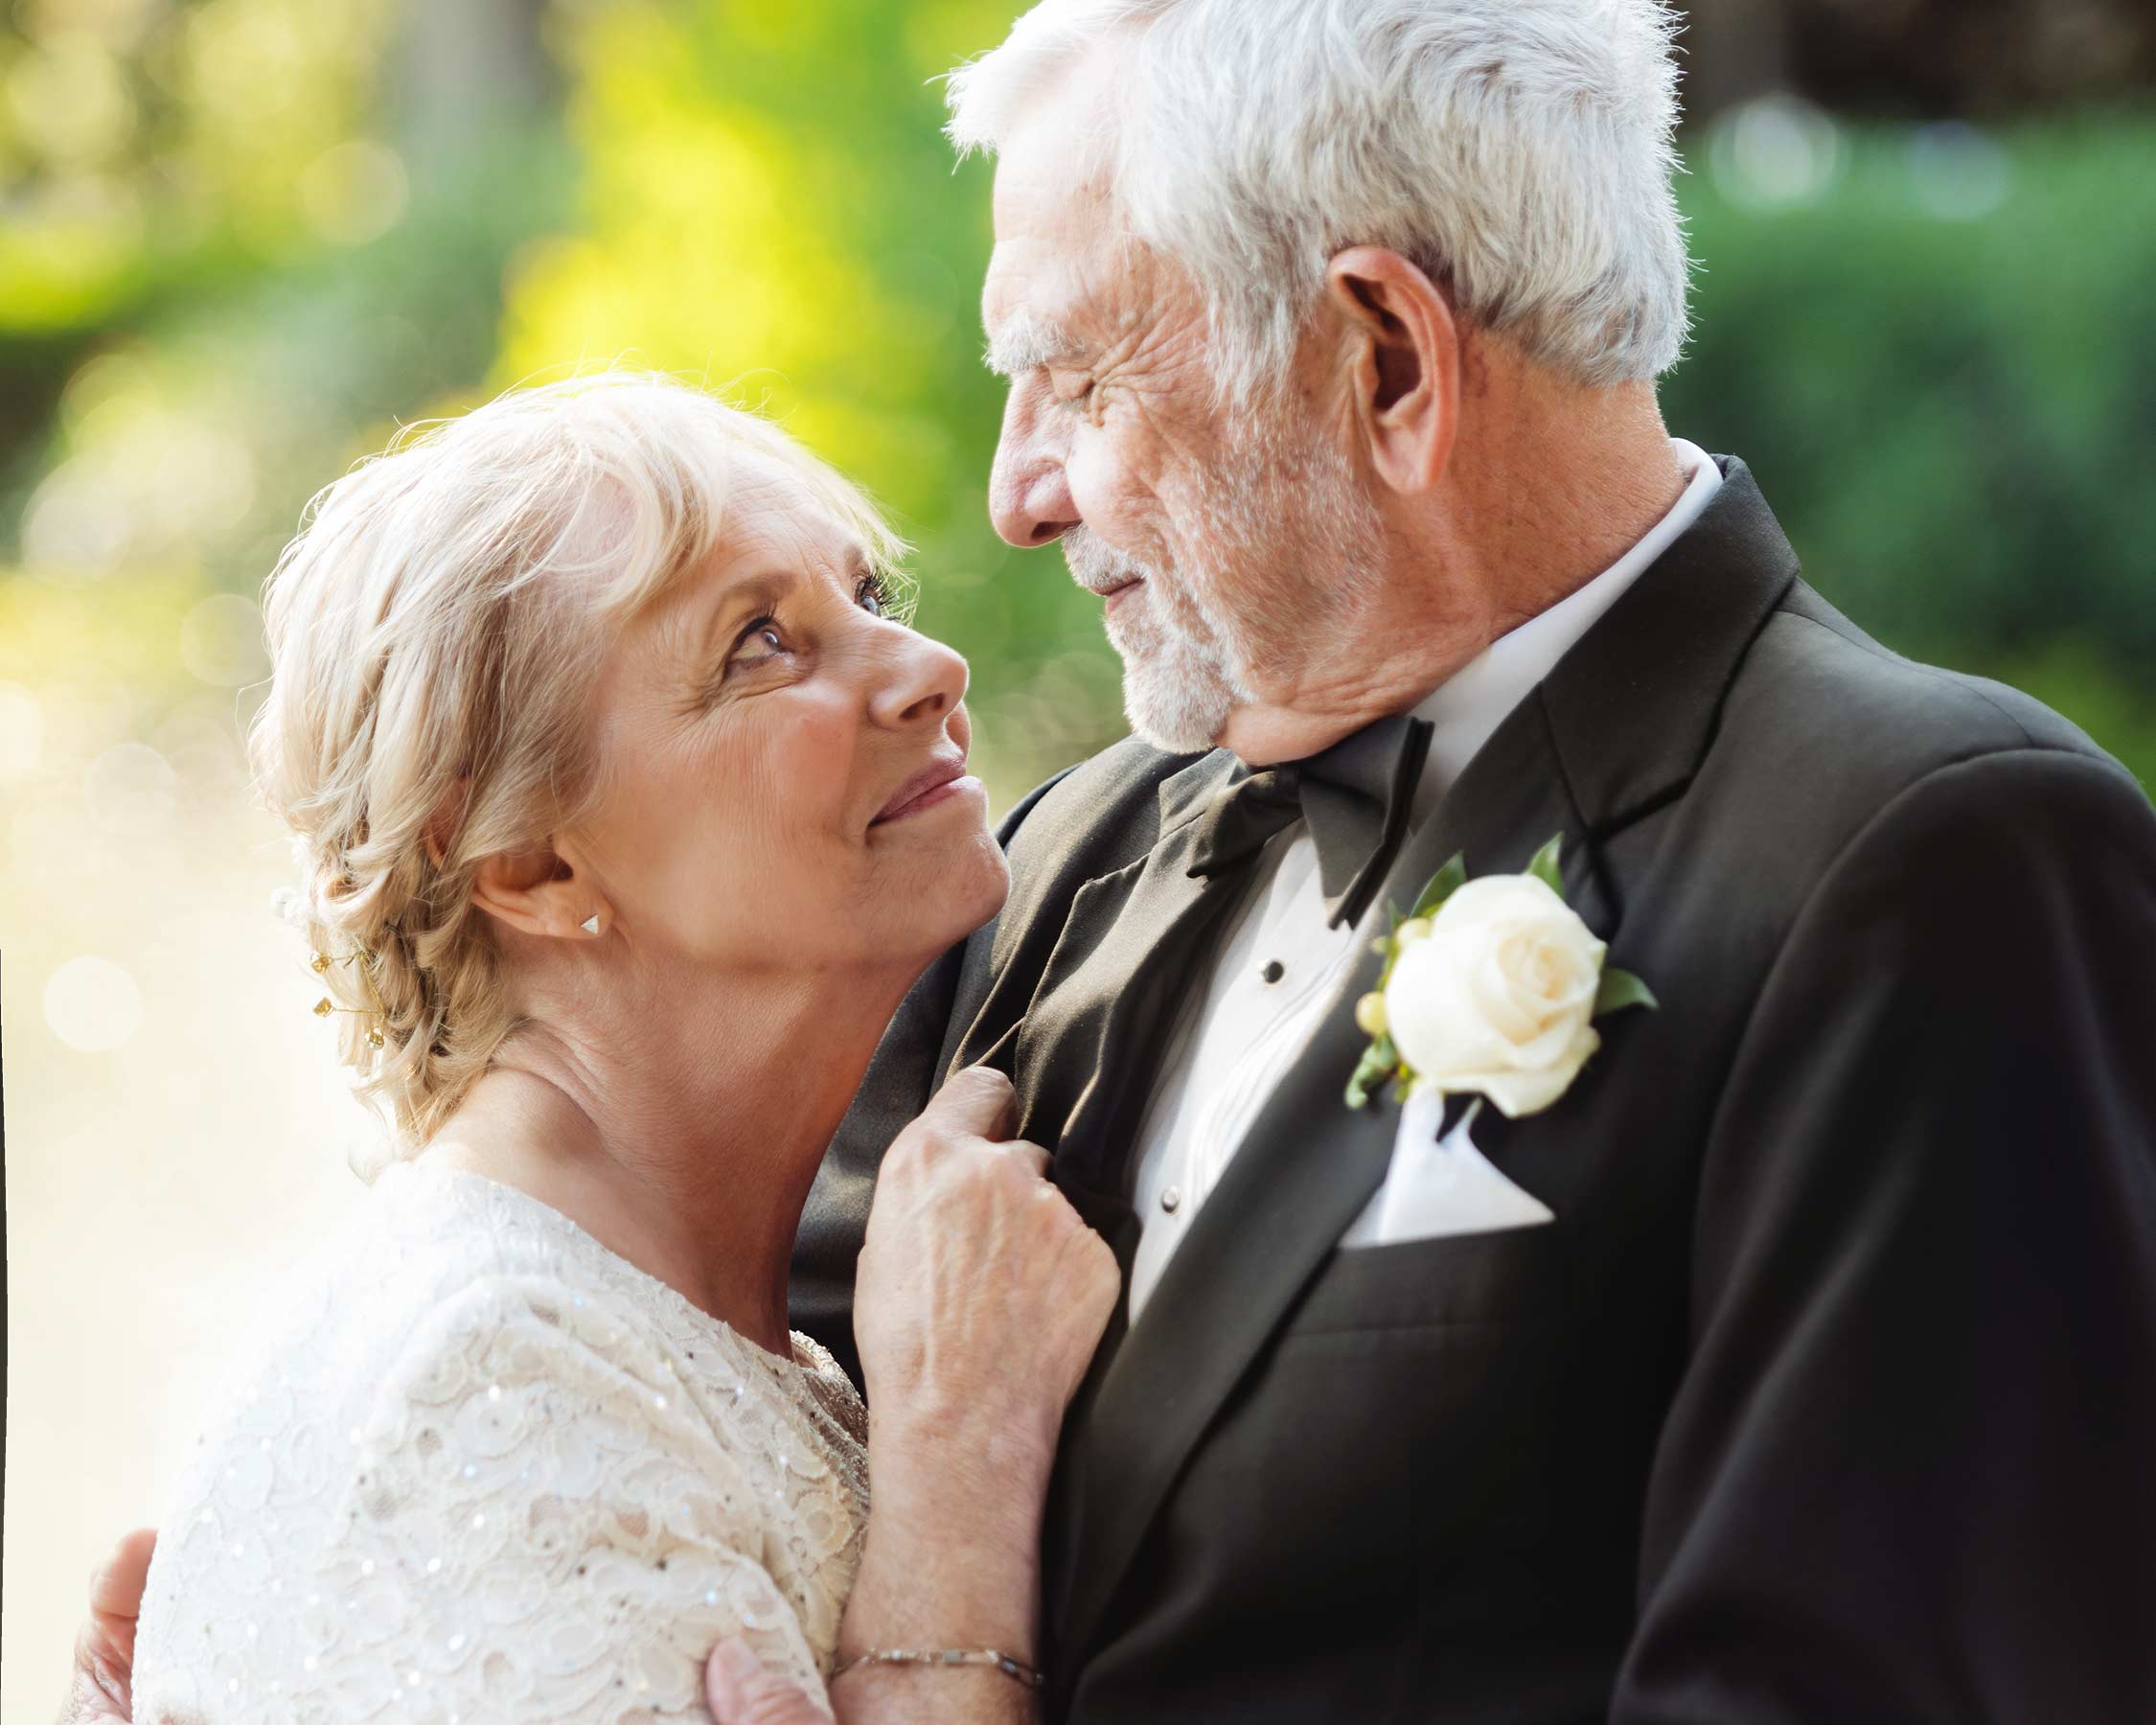 An Older Couples 2nd Chance at Love